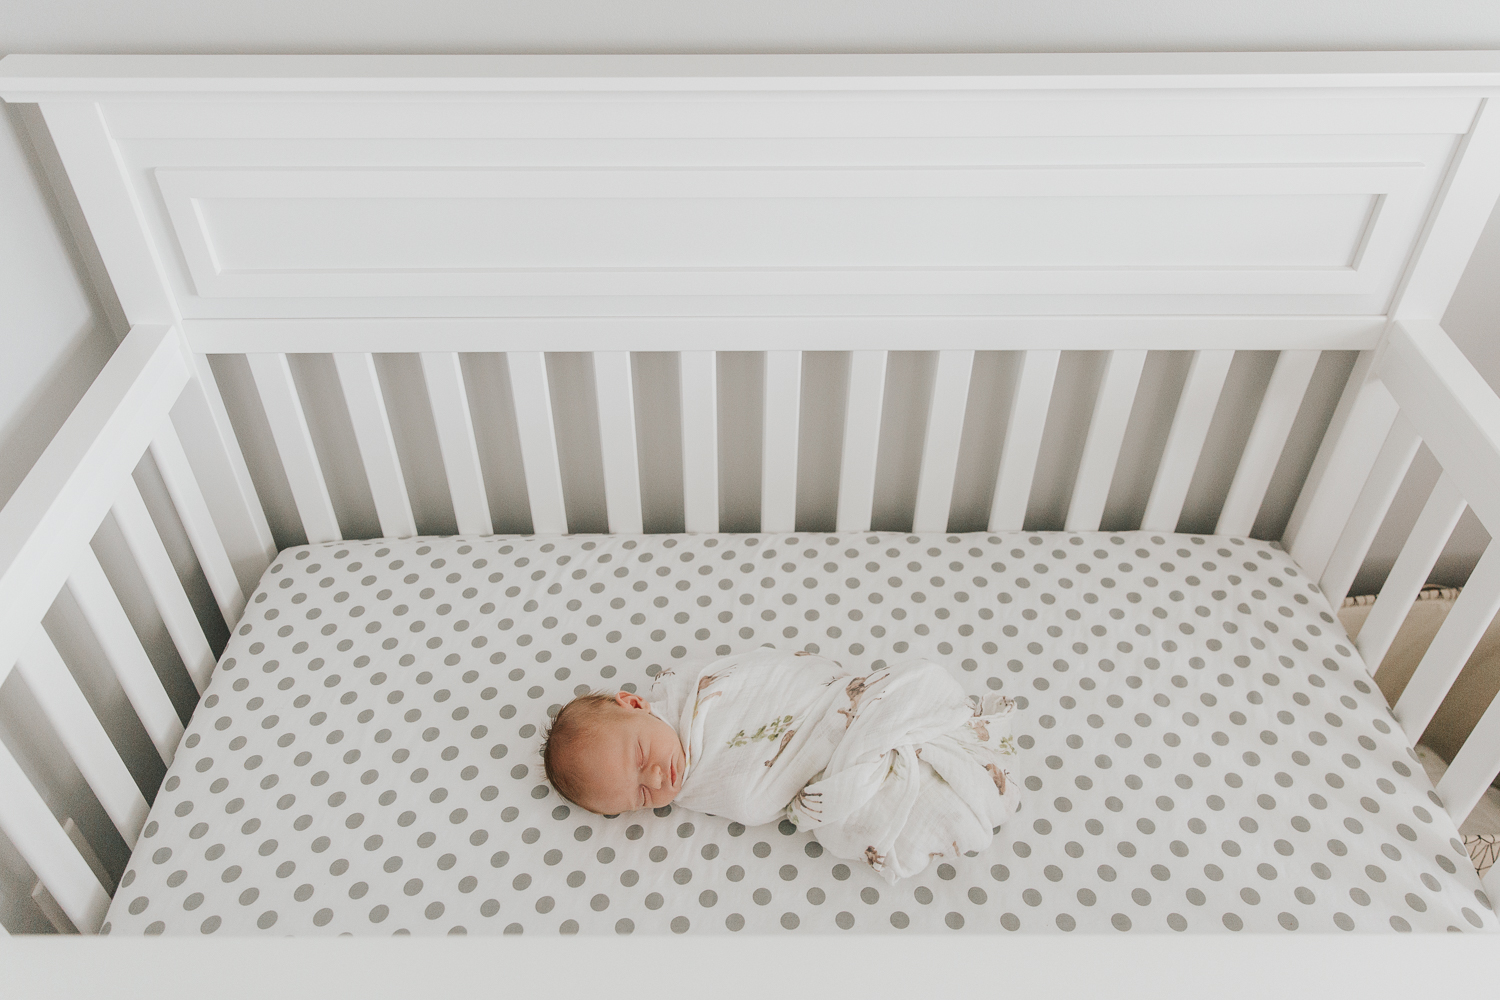 3 week old baby boy with red hair wrapped in swaddle and lying in crib with grey and white polka dot sheets, shot from above - Stouffville Lifestyle Photos